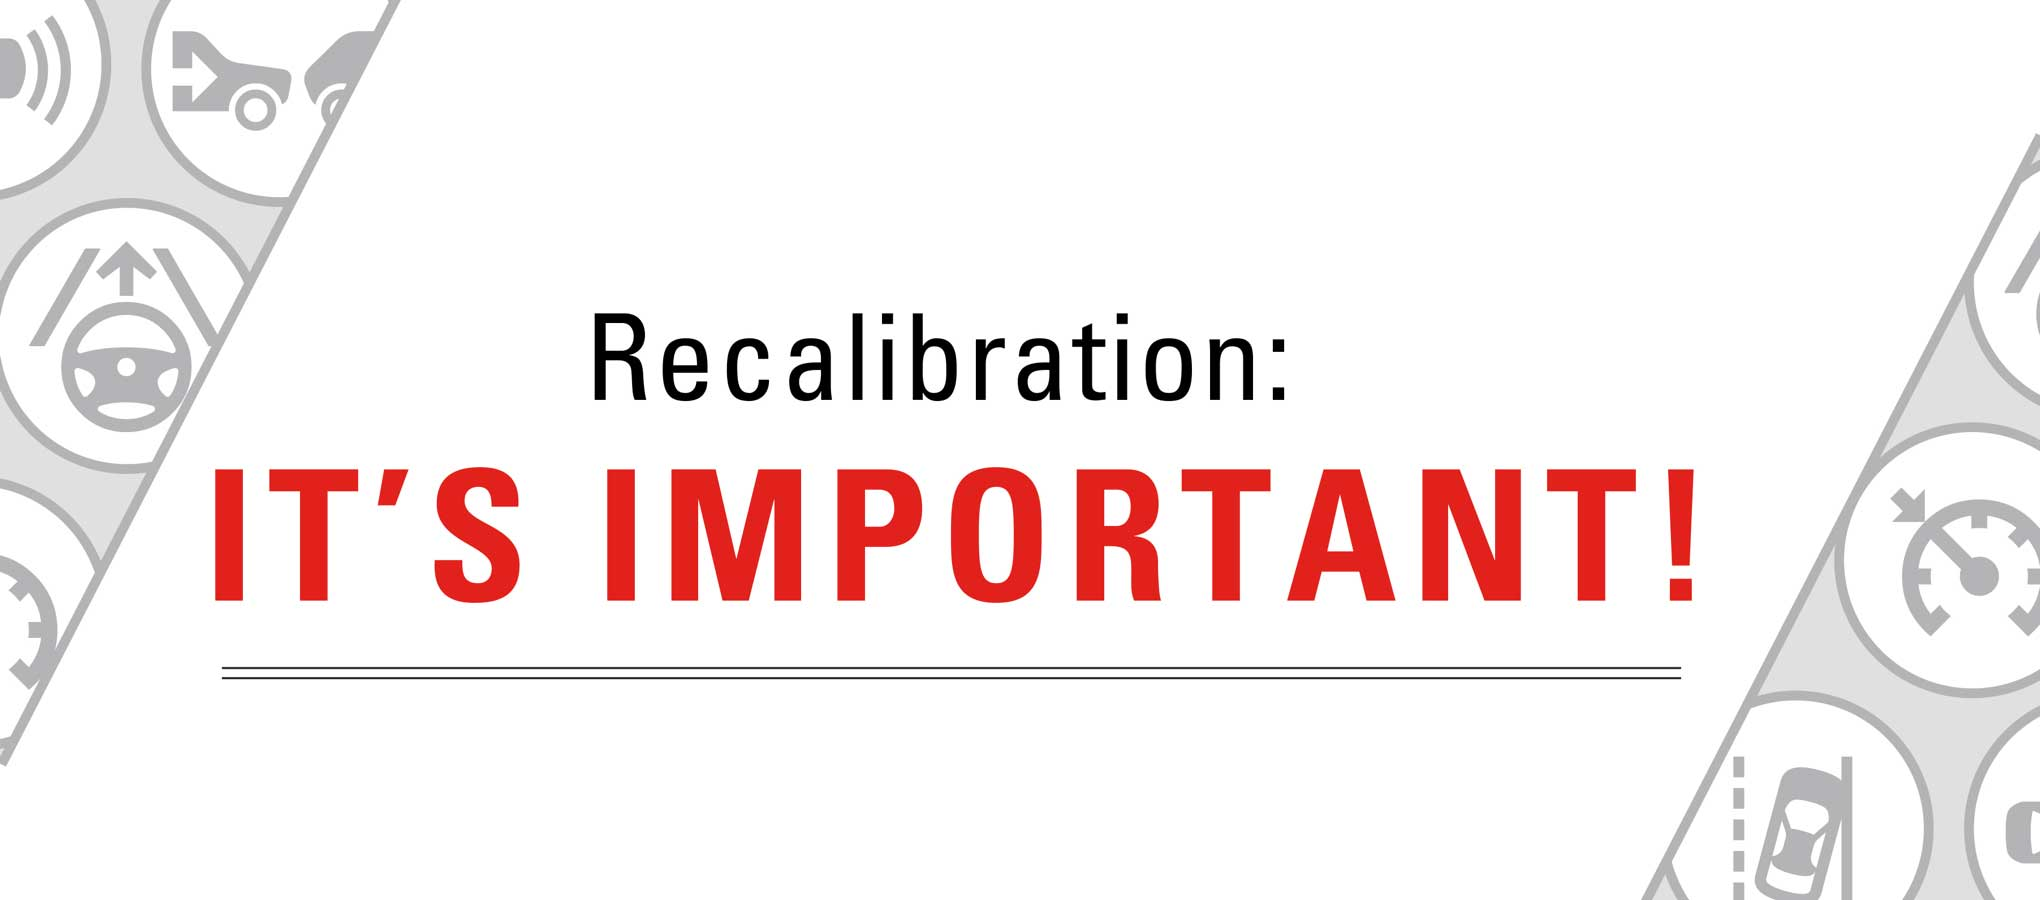 The_Importance_of_Recalibration